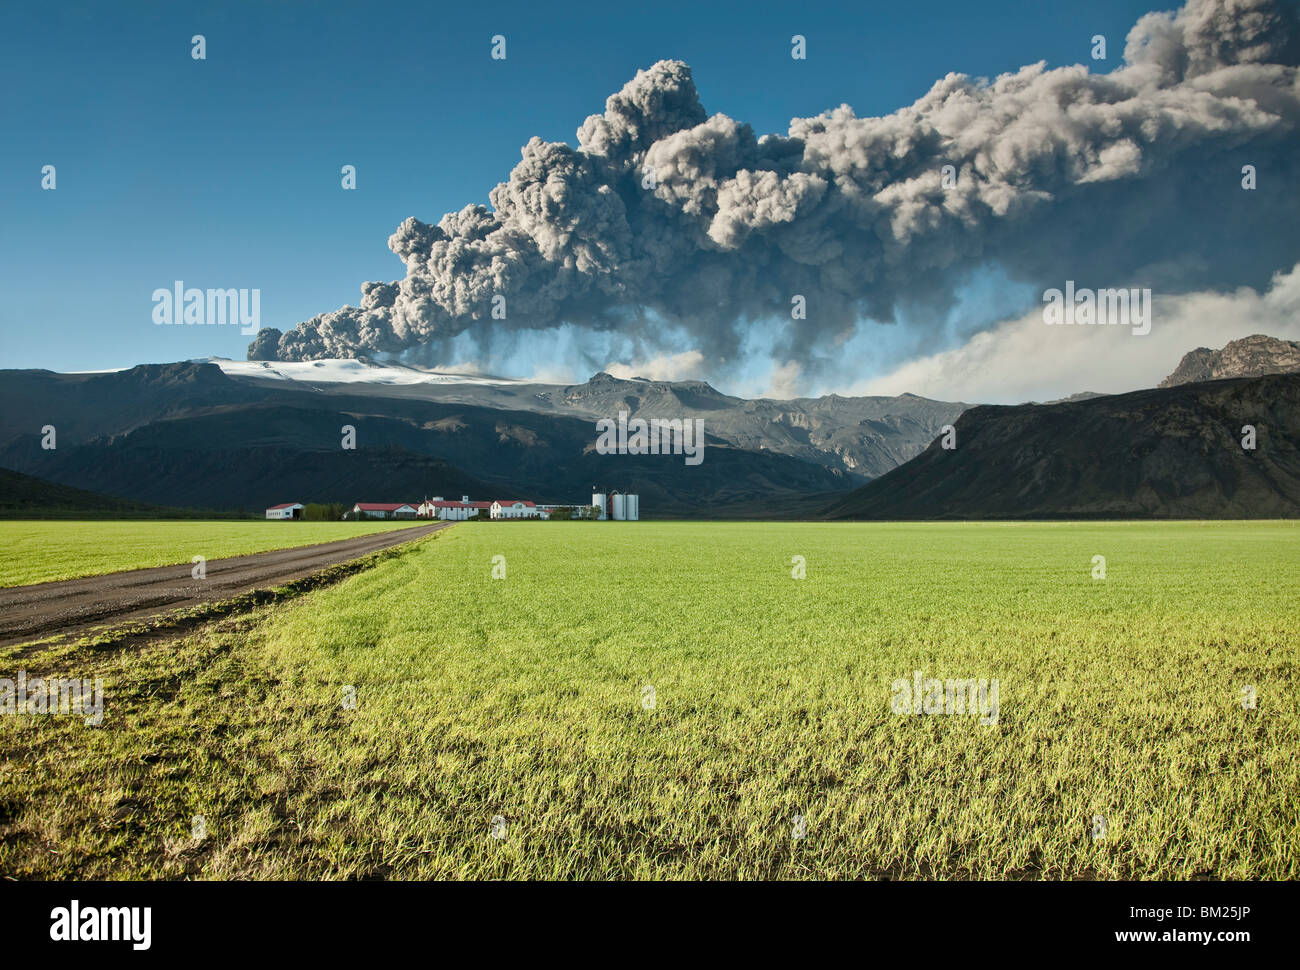 Ash cloud from the Eyjafjallajokull eruption in Iceland towering over a nearby farm - Stock Image